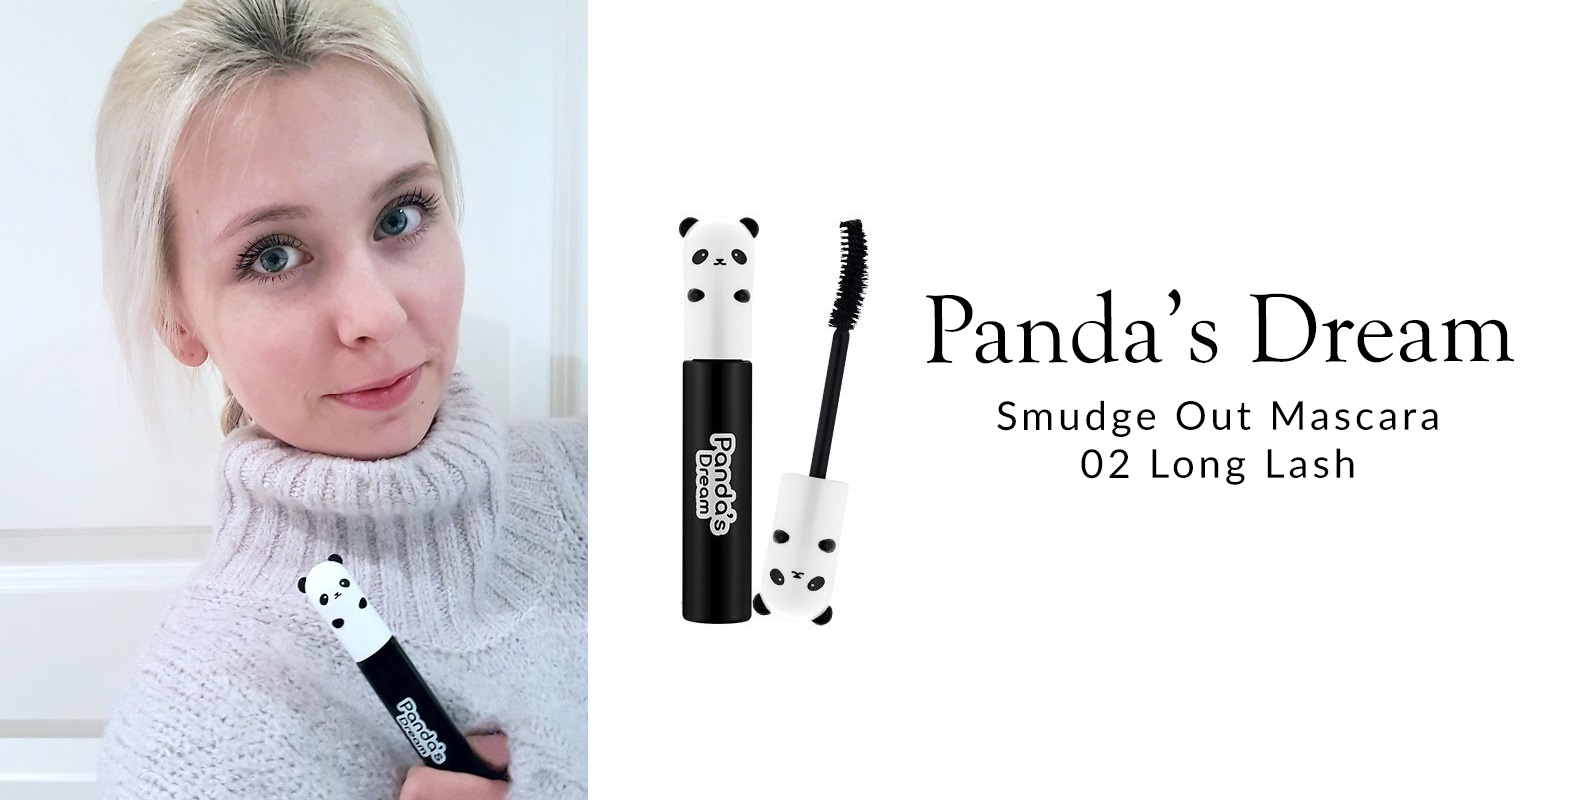 Panda's Dream Smudge Out Mascara 02 Long Lash